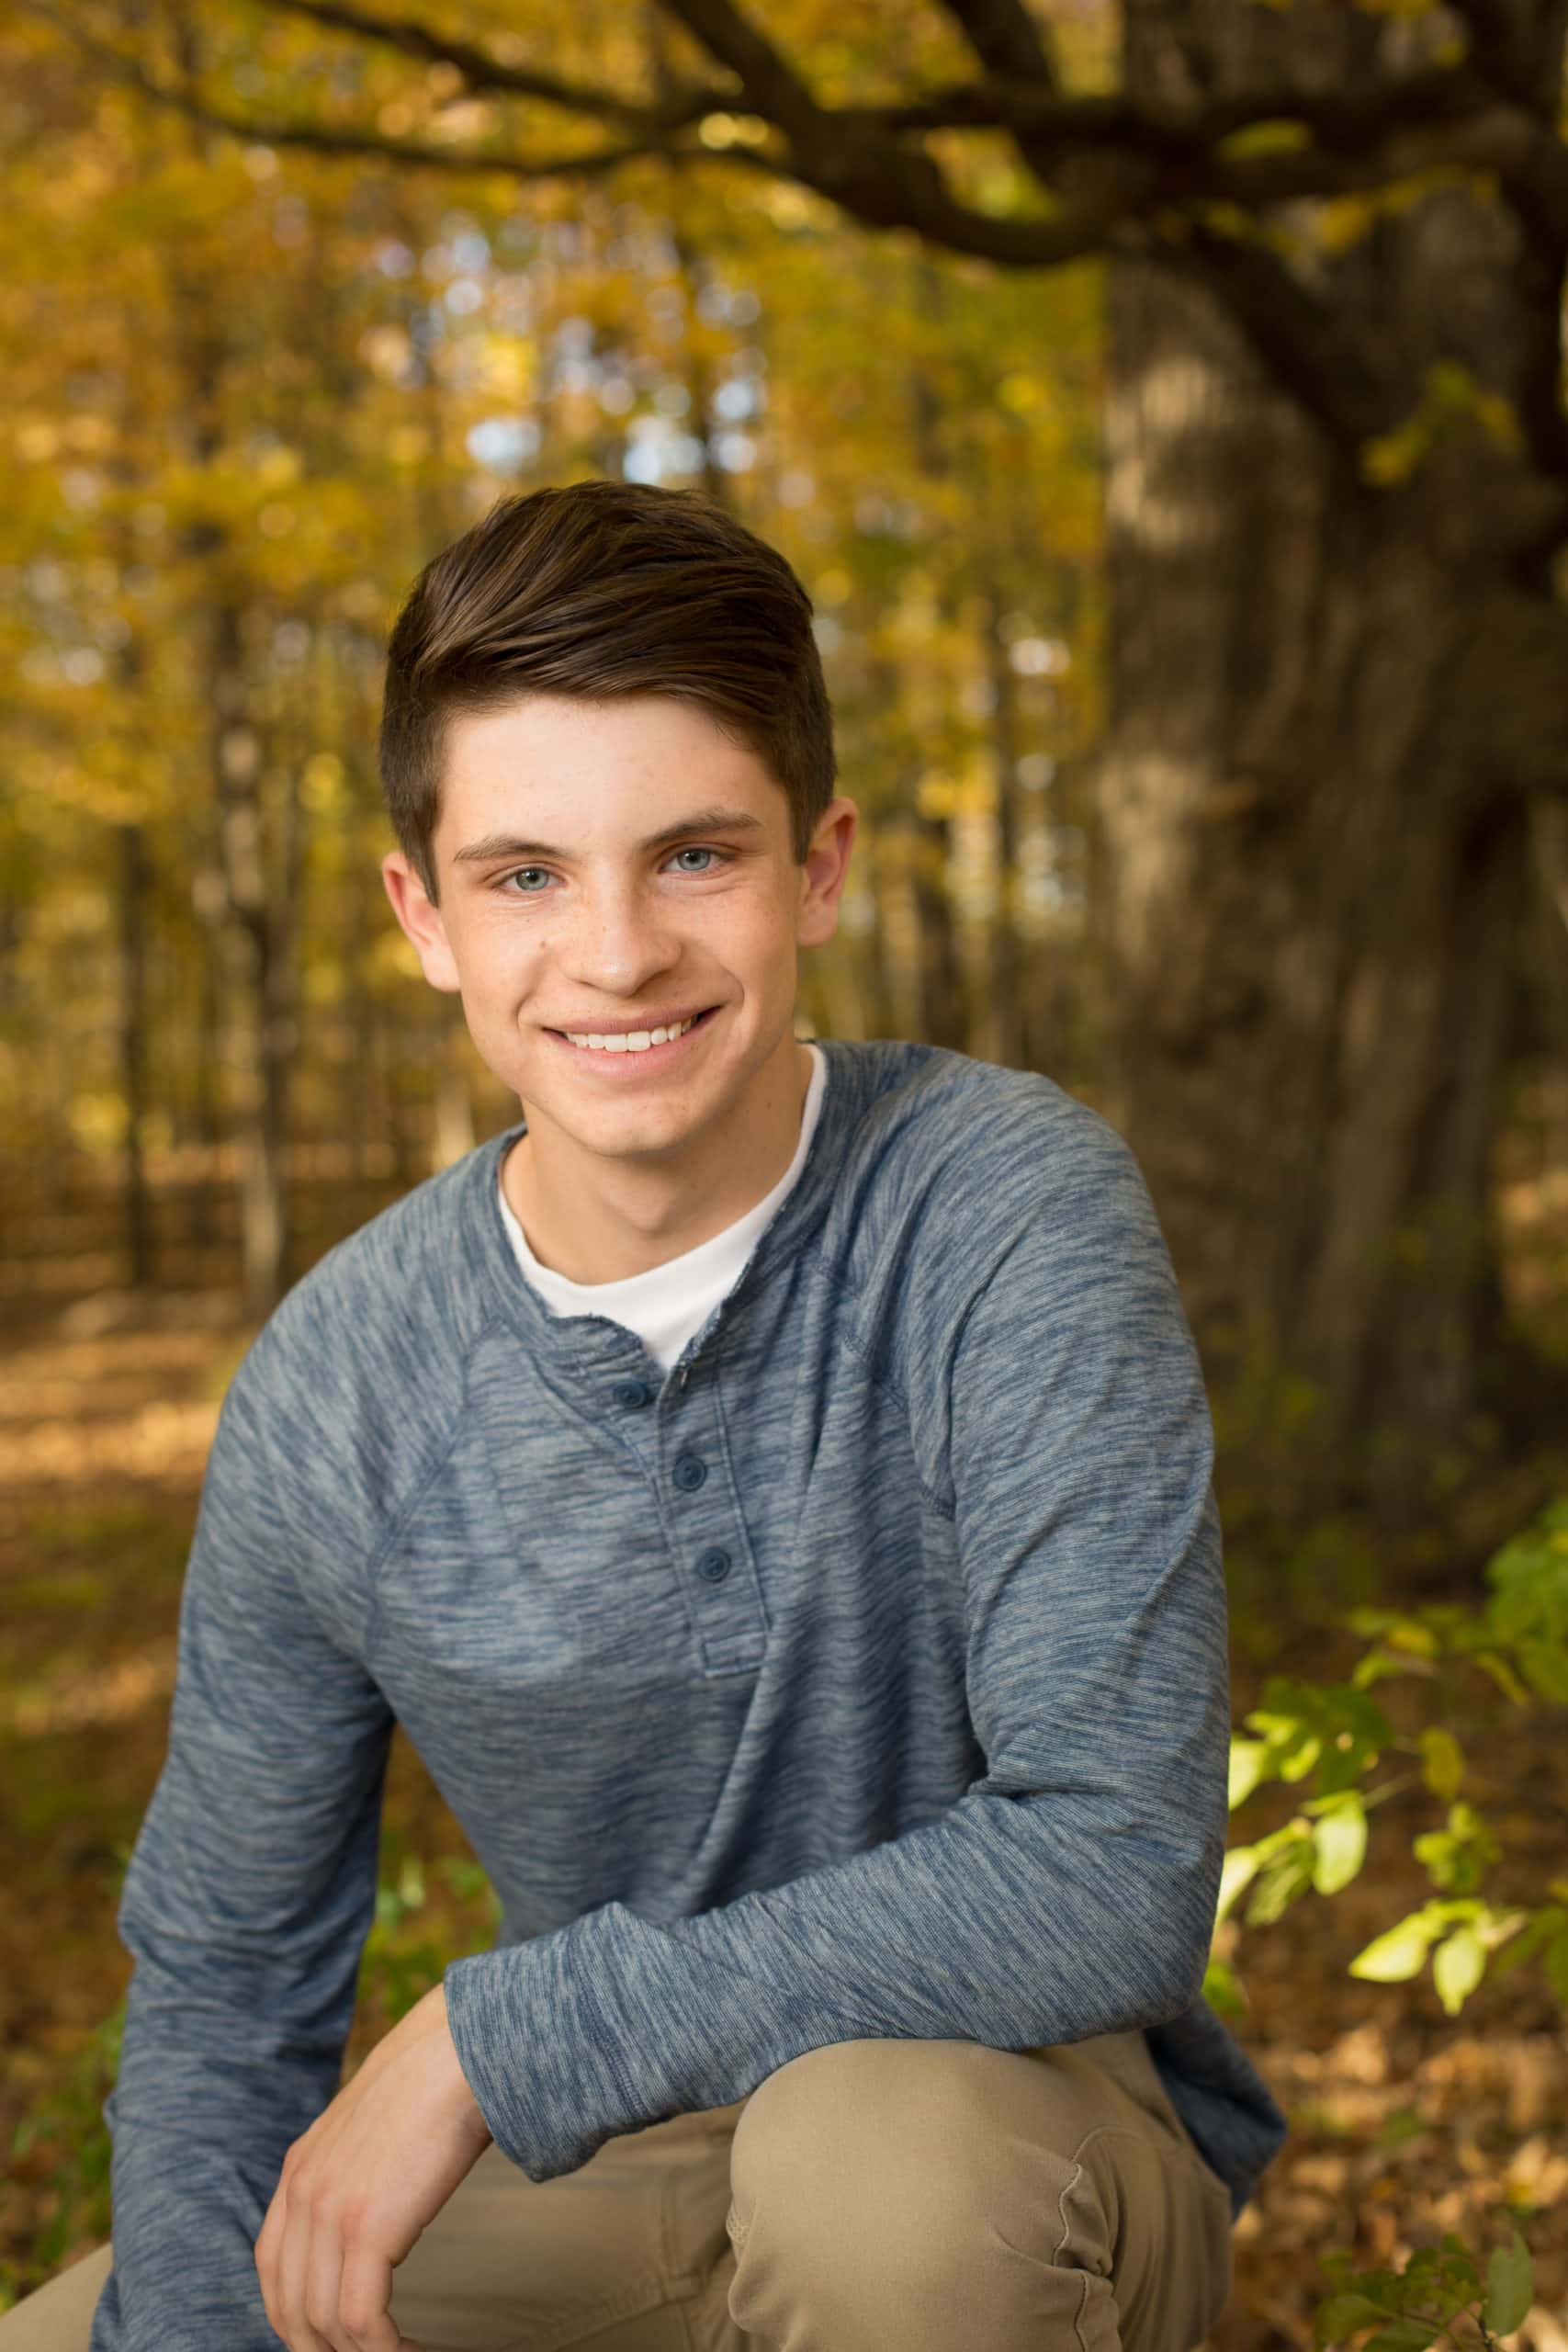 Ben sitting near the trunk of a tree with fall foliage behind him